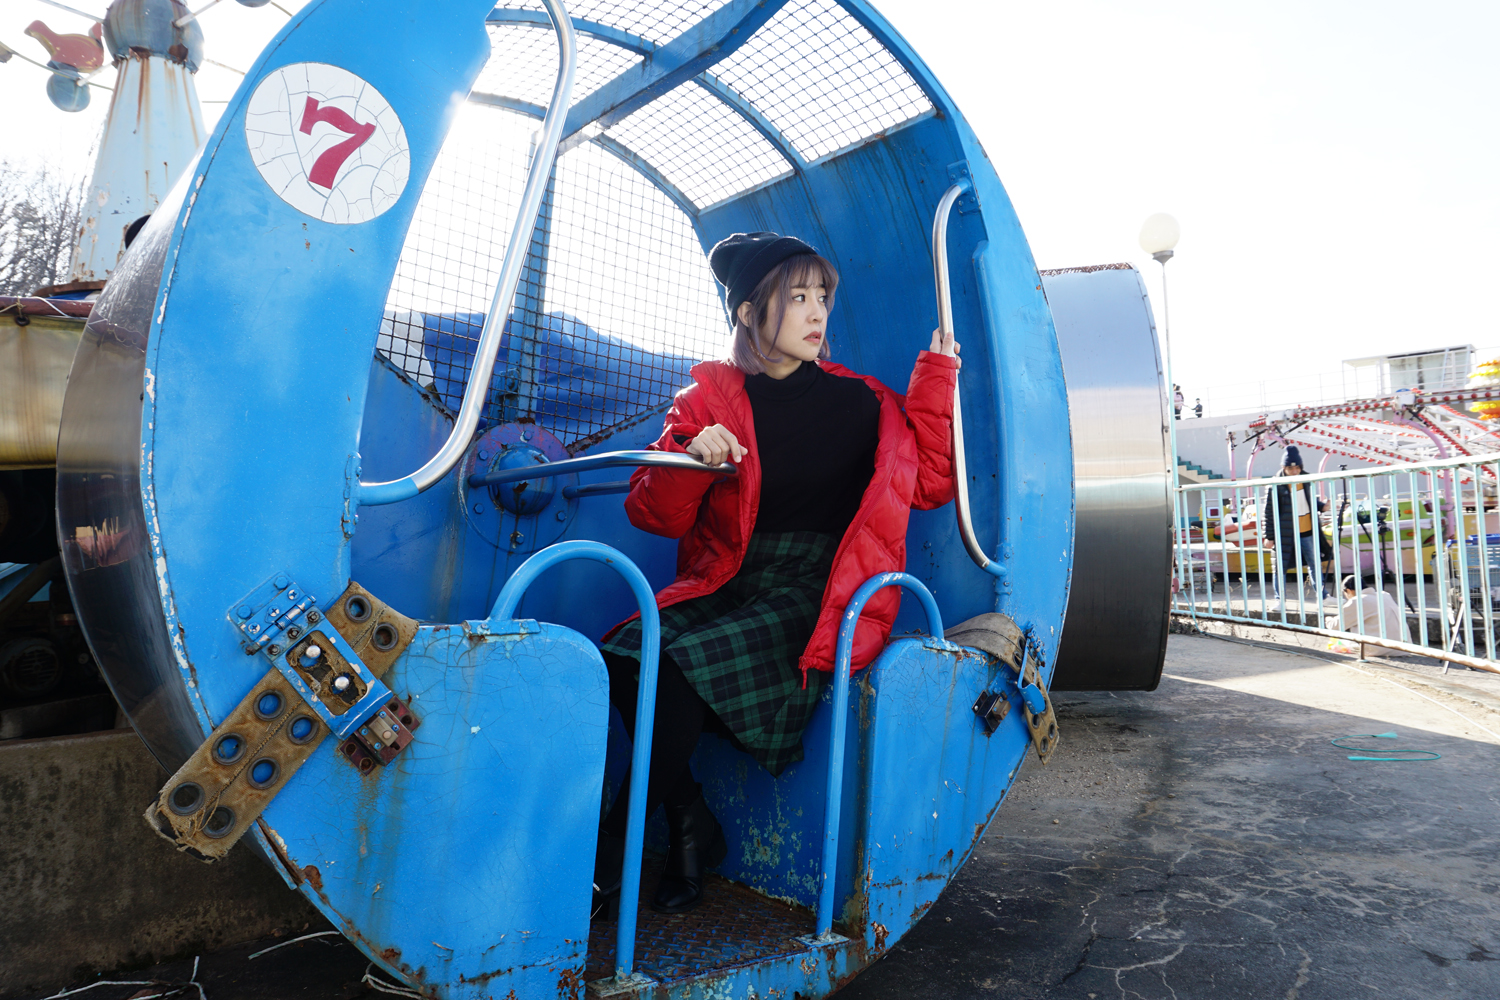 Yongma_Land_Abandoned_Amusement_Park_Seoul_Korea_Photoshoot_9